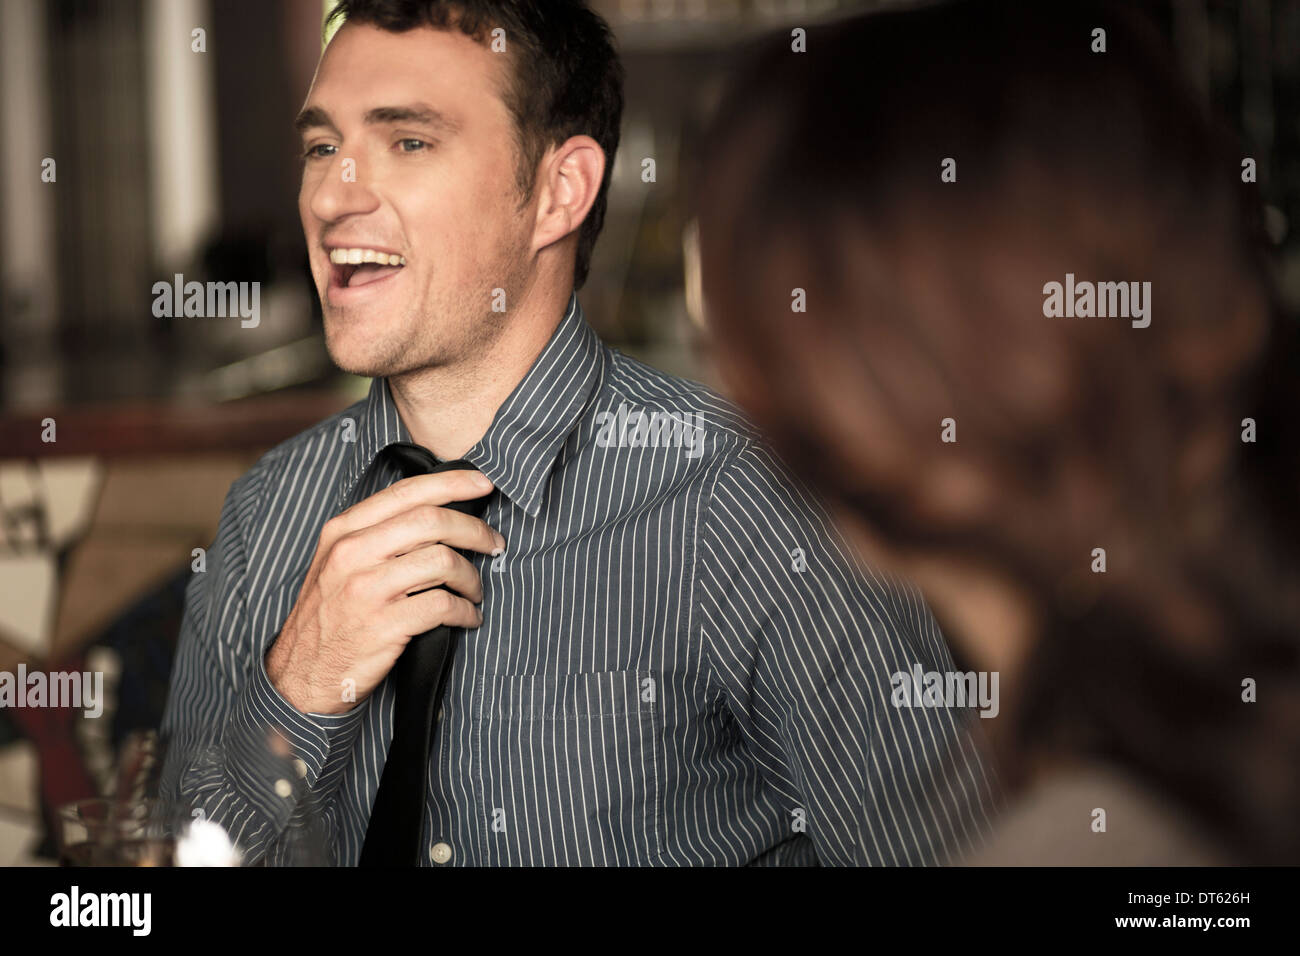 Businessman loosening tie in a wine bar - Stock Image